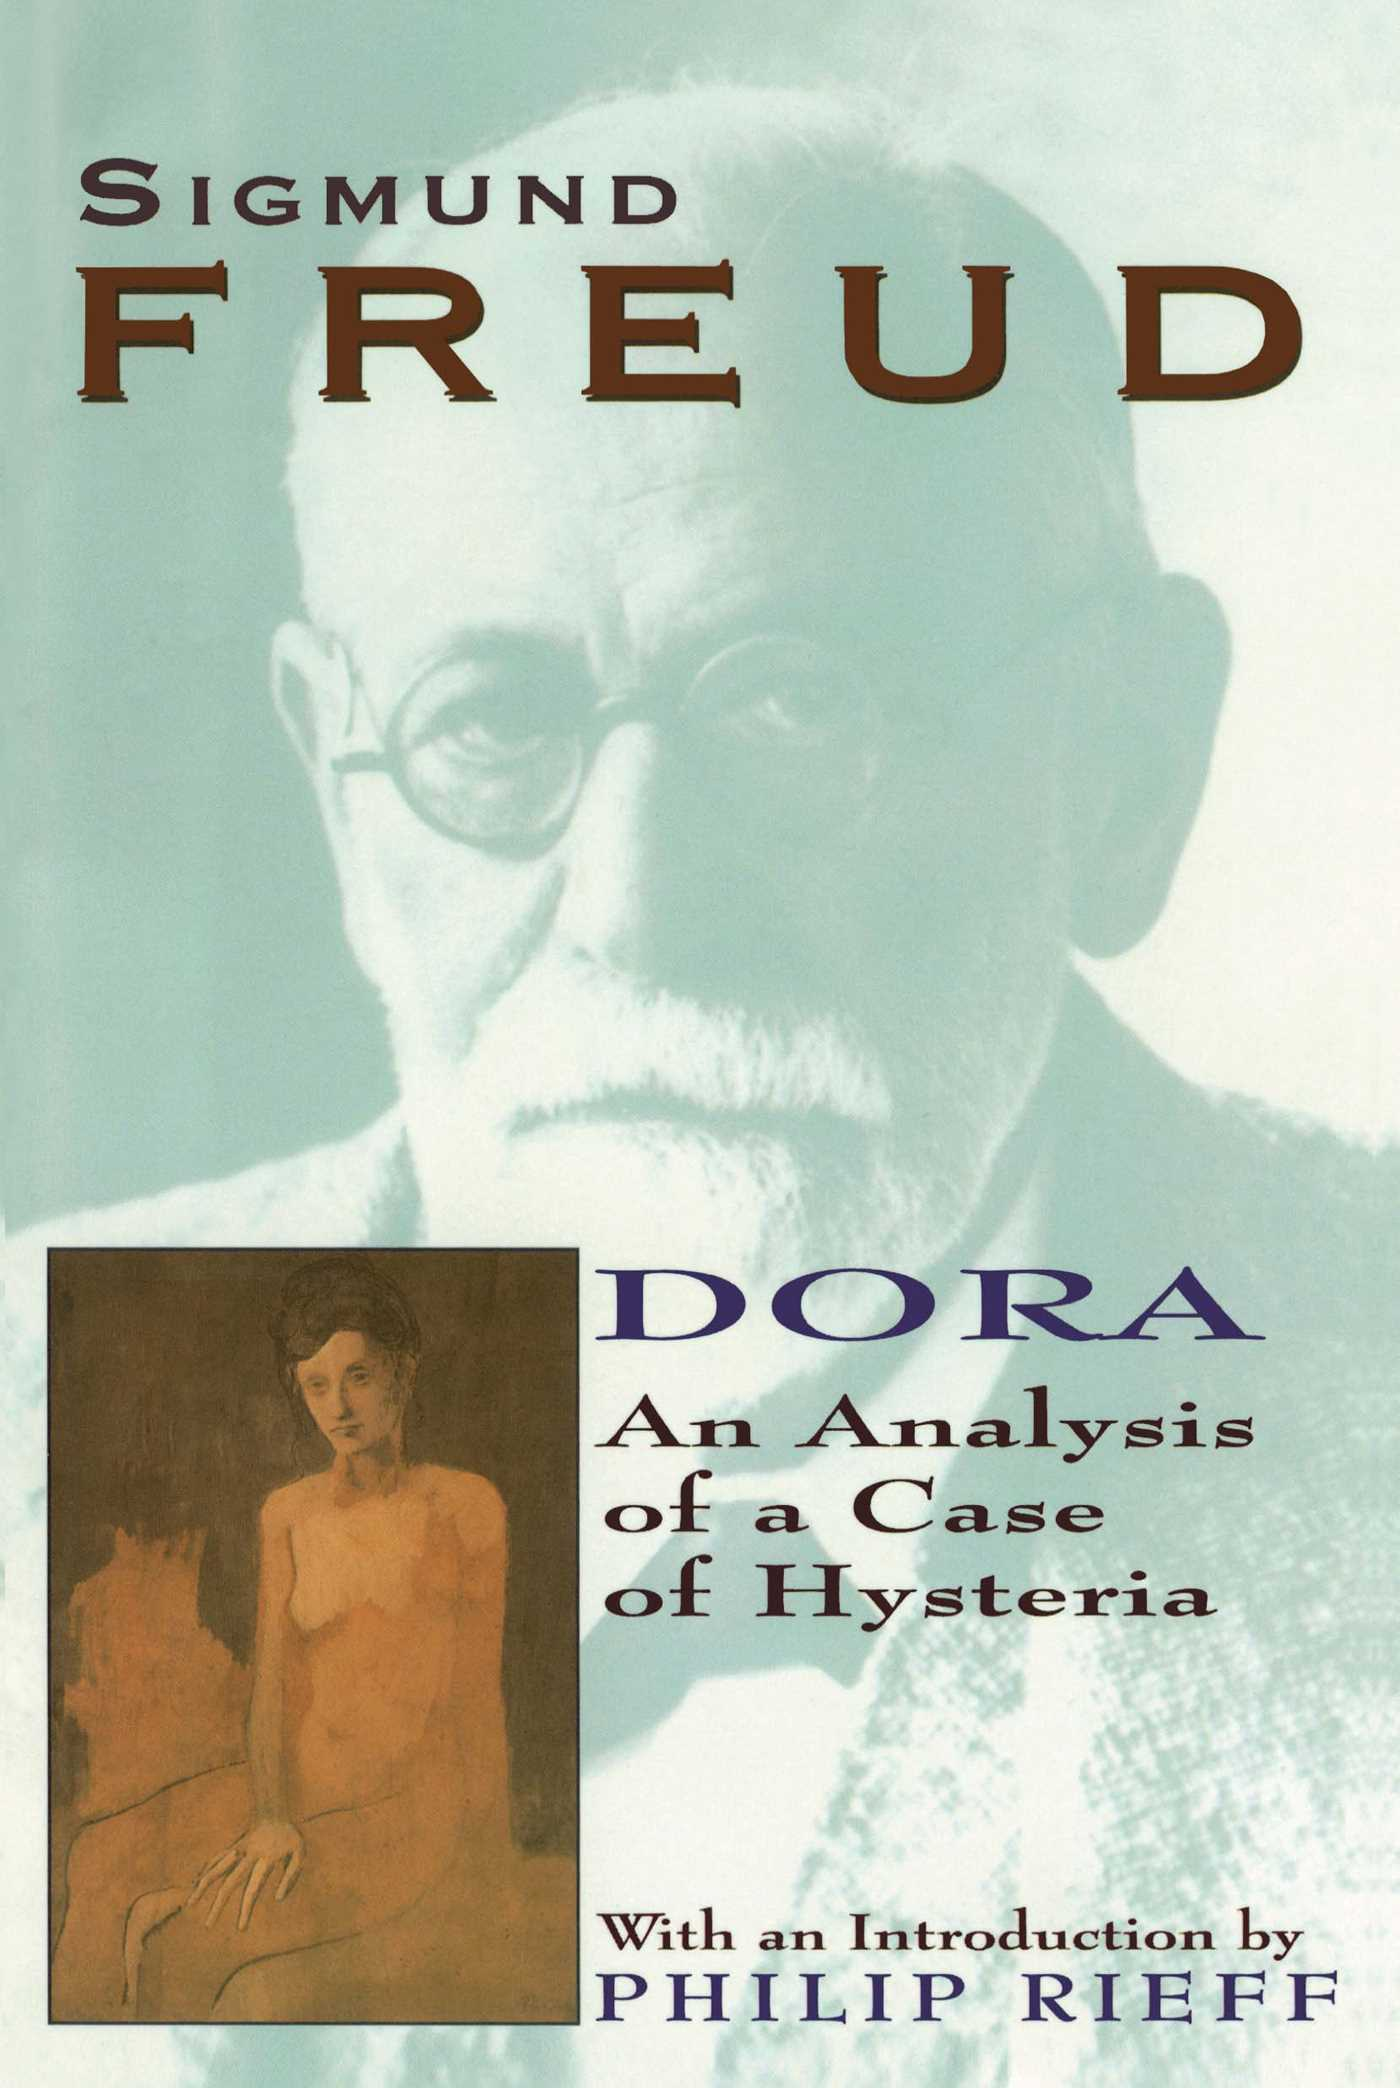 Dora book by sigmund freud official publisher page simon dora 9780684829463 hr fandeluxe Gallery